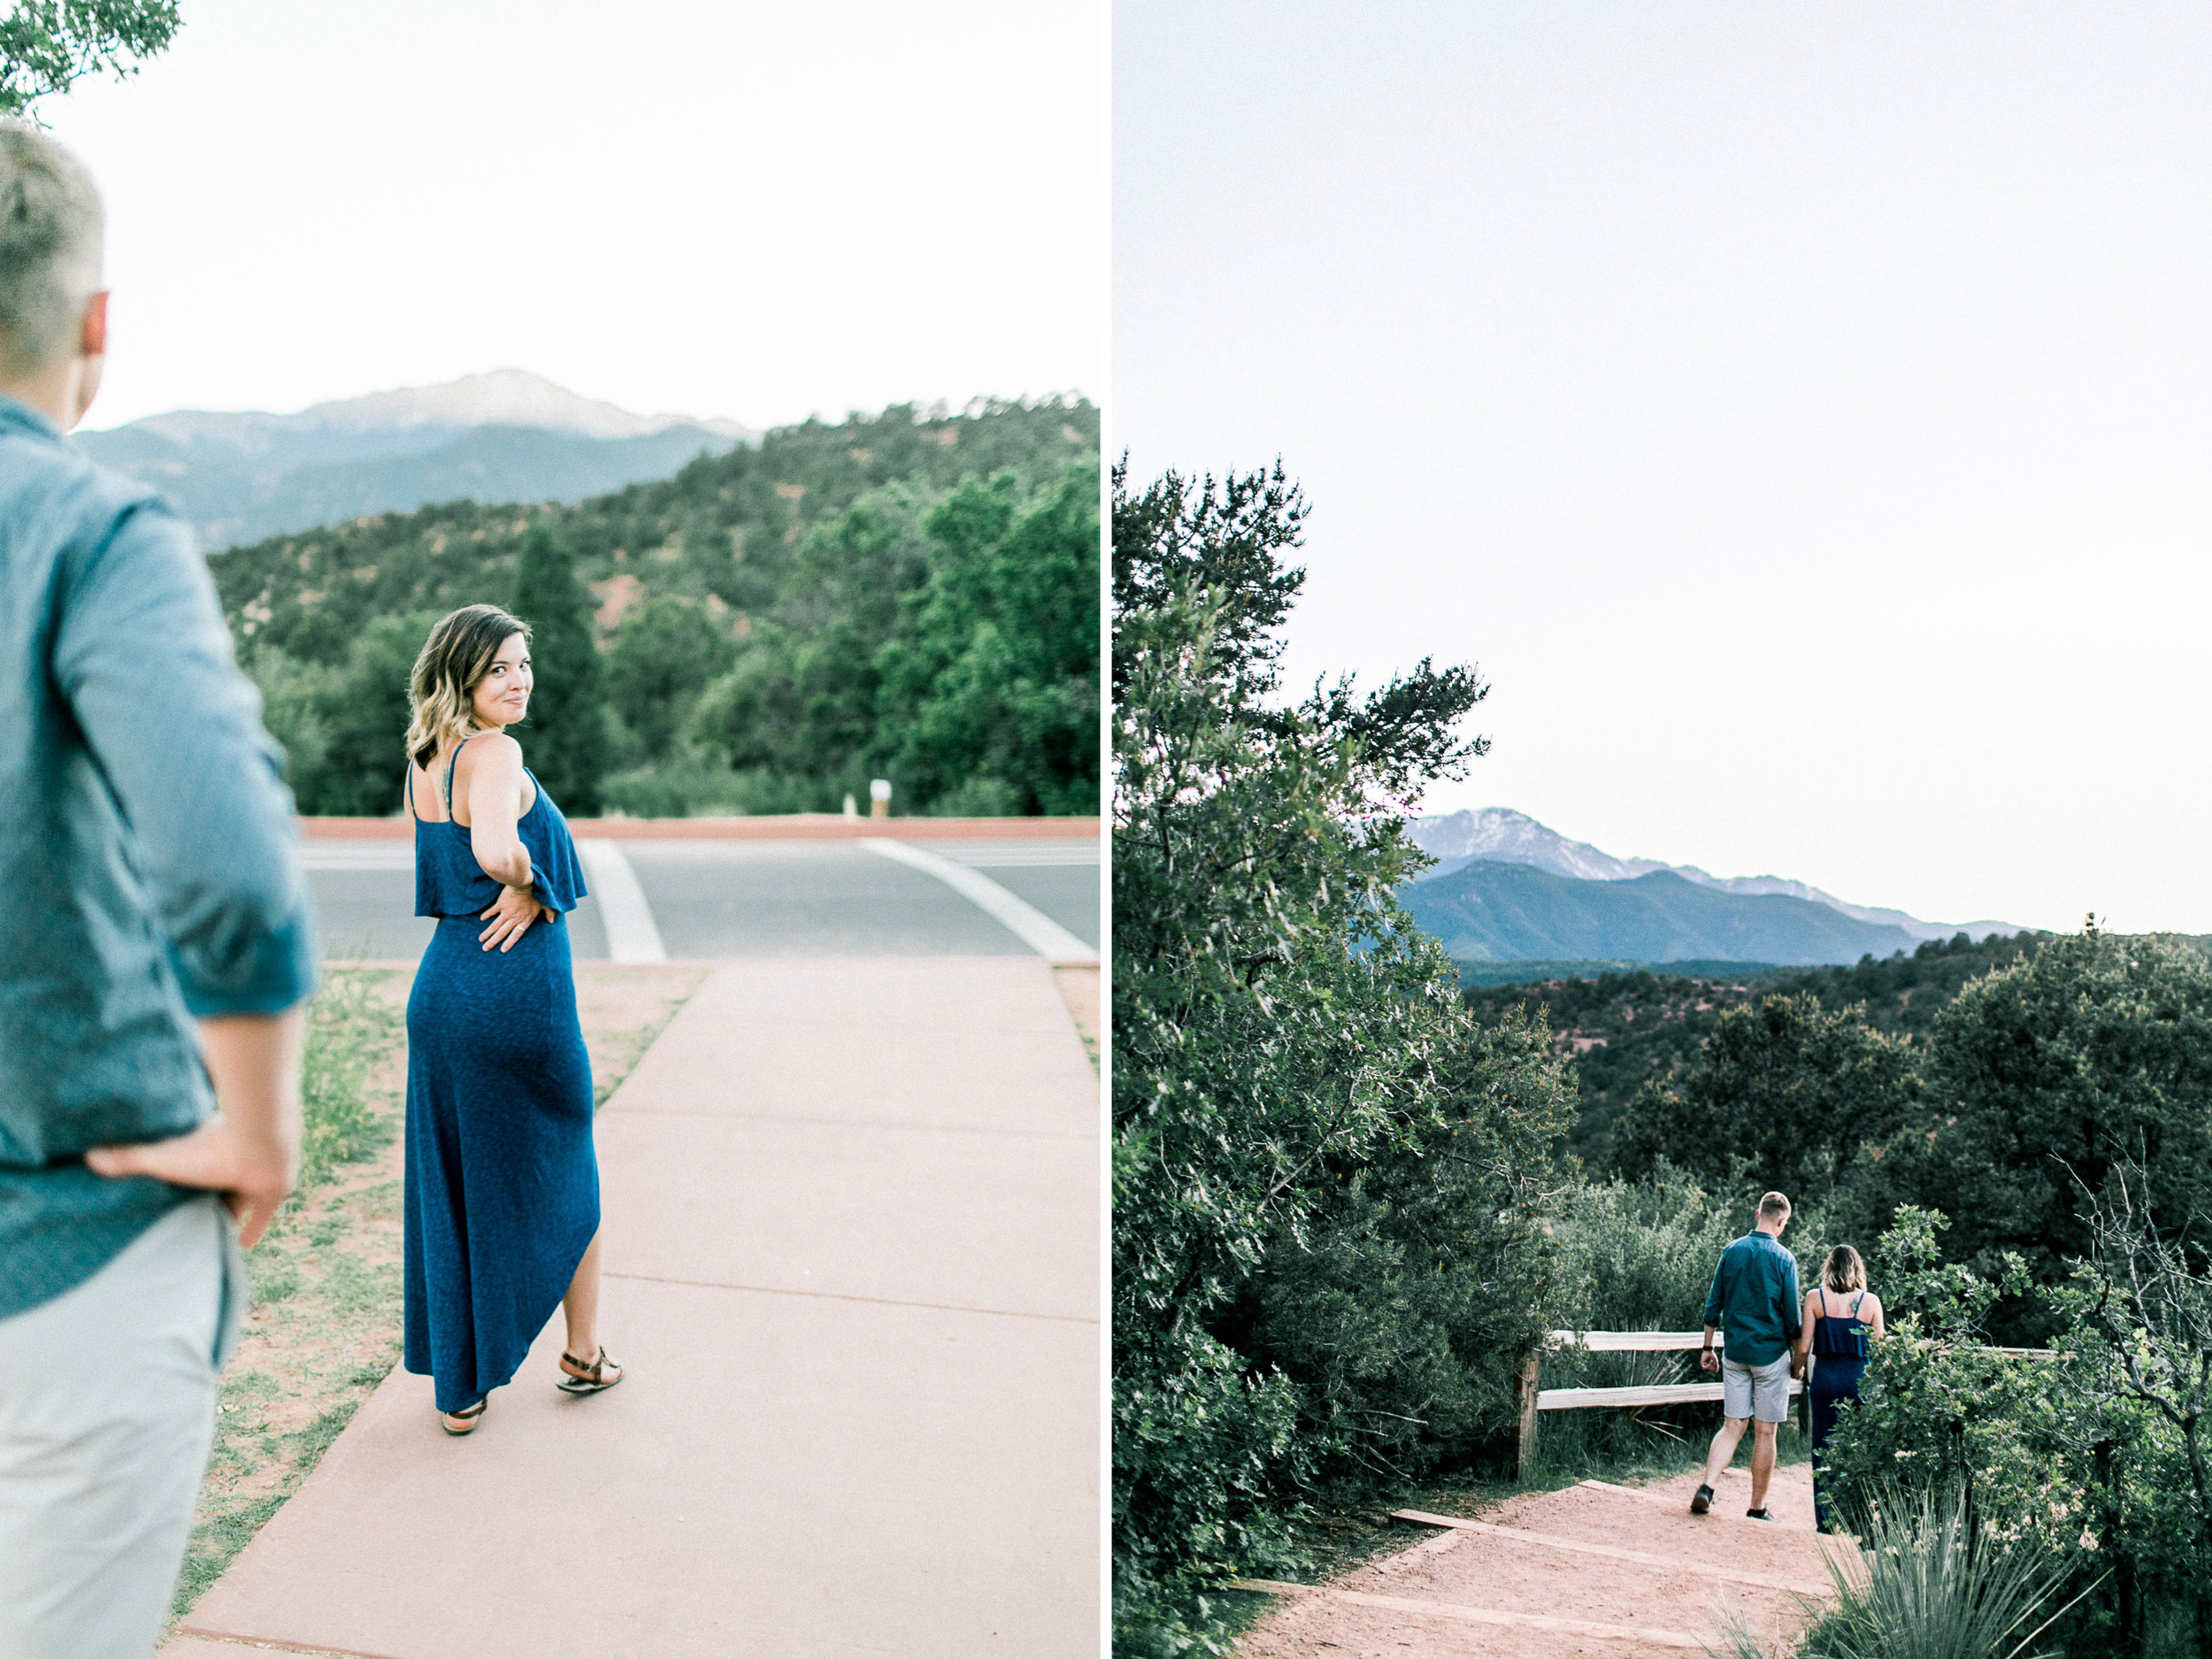 Colorado Springs Engagement Wedding Adventure Photographer - Erin and Jim 16.jpg